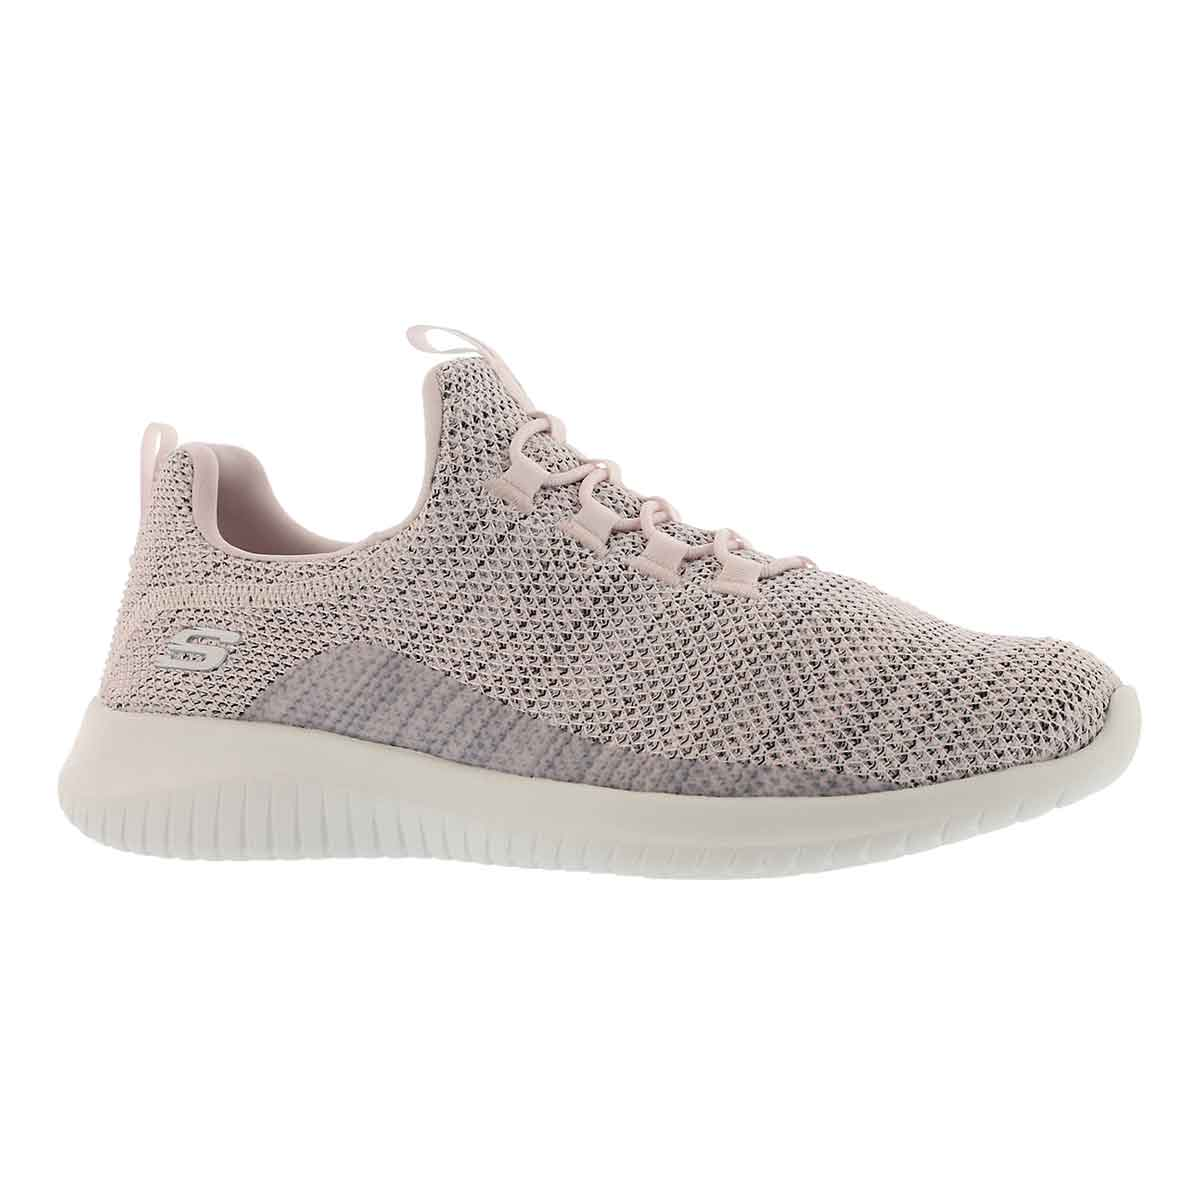 Women's ULTRA FLEX CAPSULE pink slip on sneakers